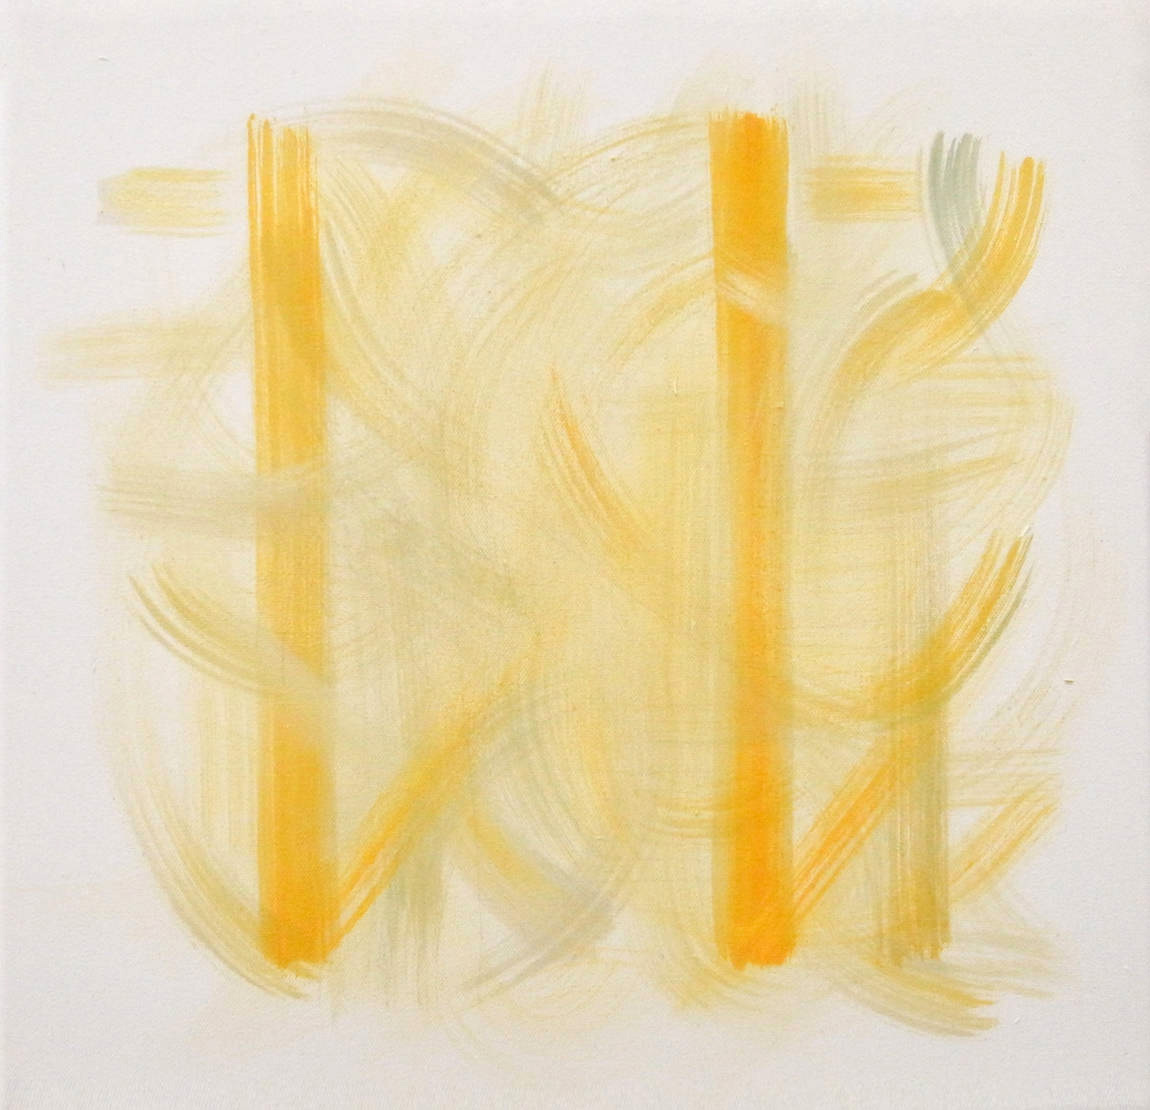 Meditative Structure - MS-I.014 – Releasing into Summer, Oil on Canvas (2012)